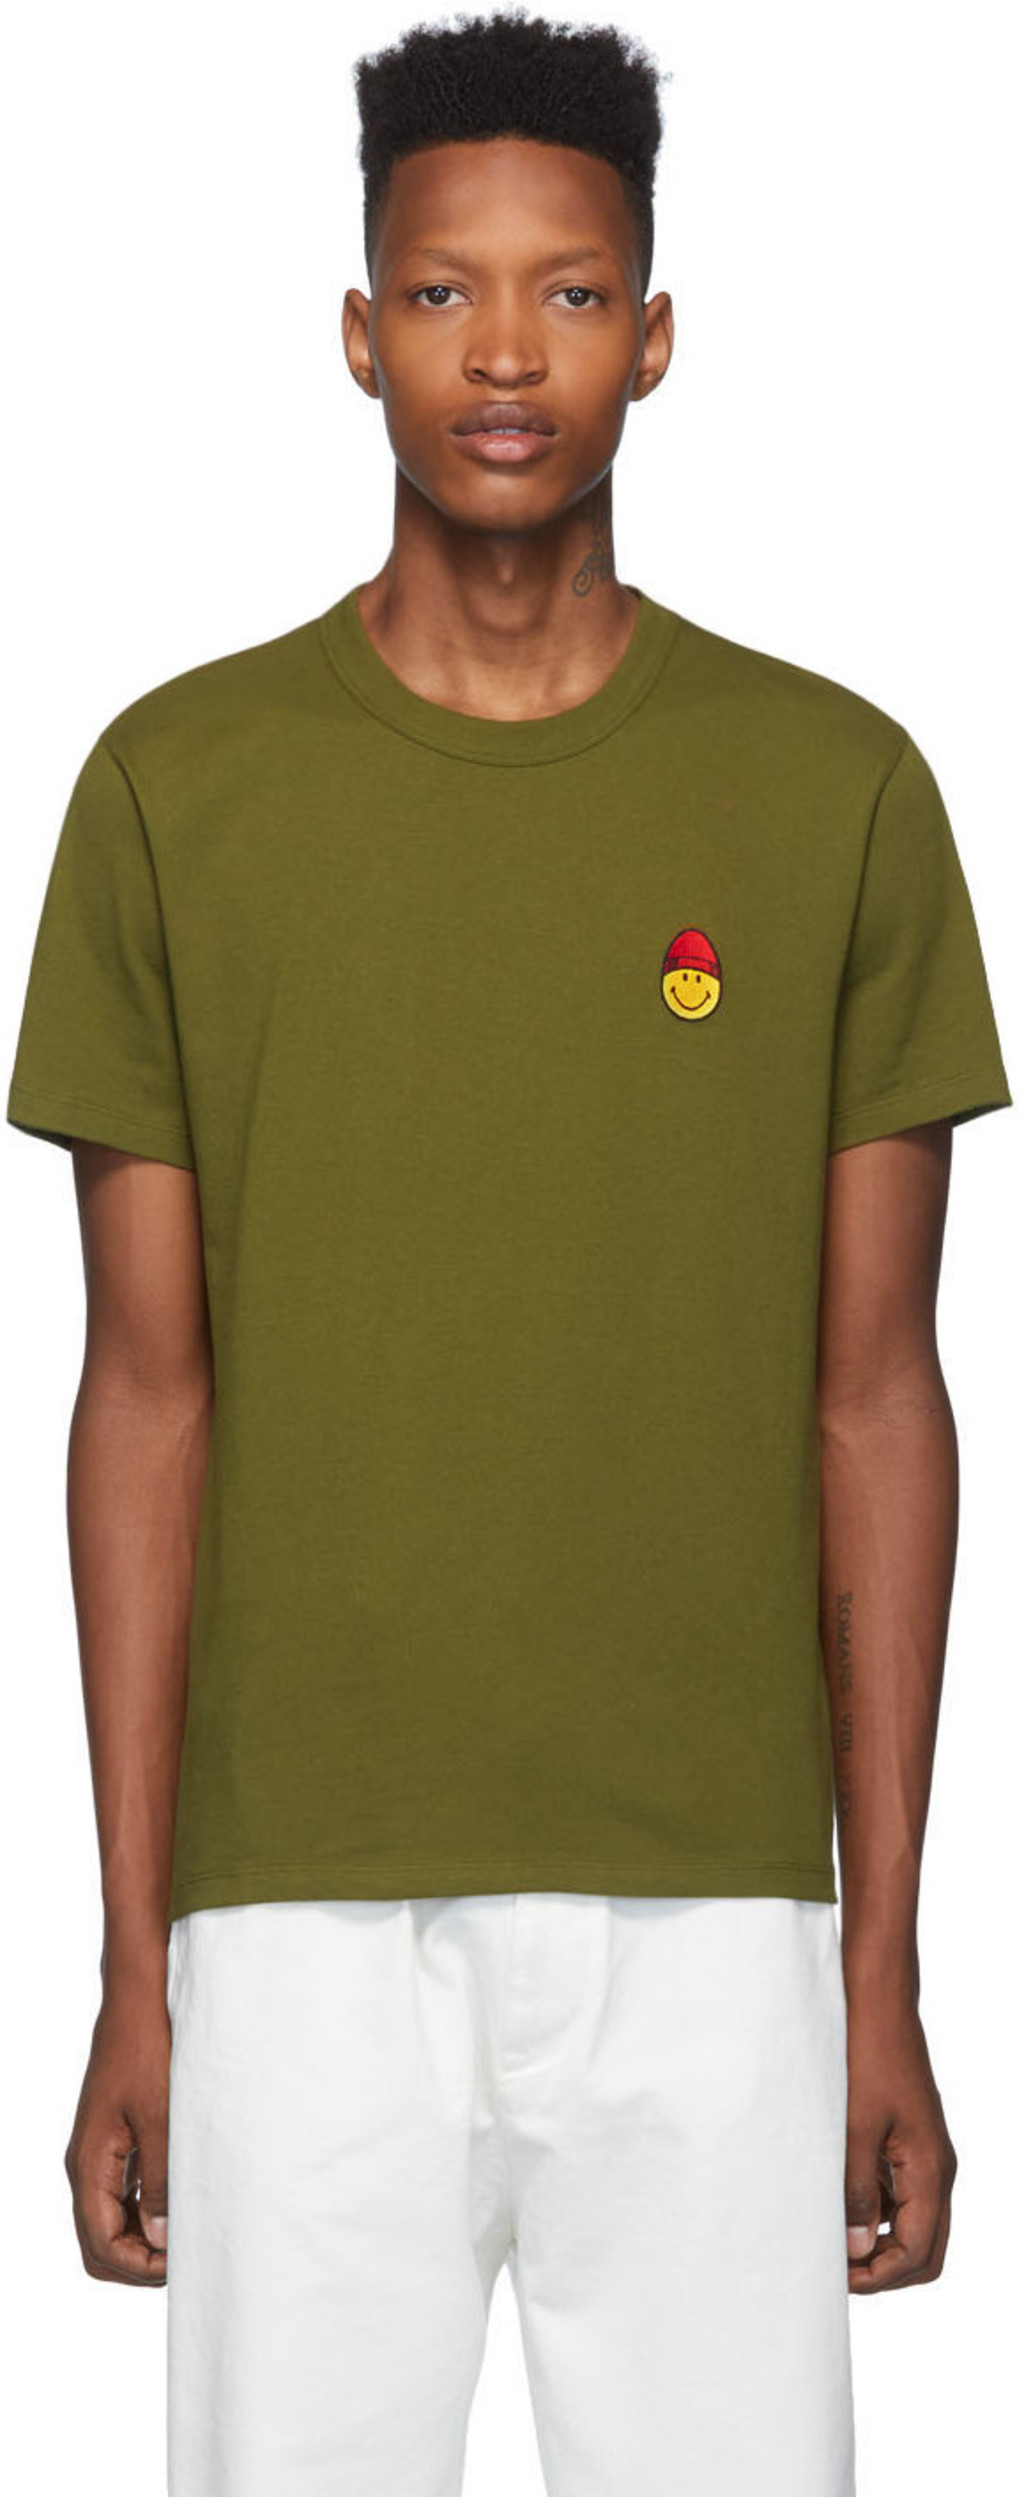 4c81650fe Green Smiley Edition T-Shirt